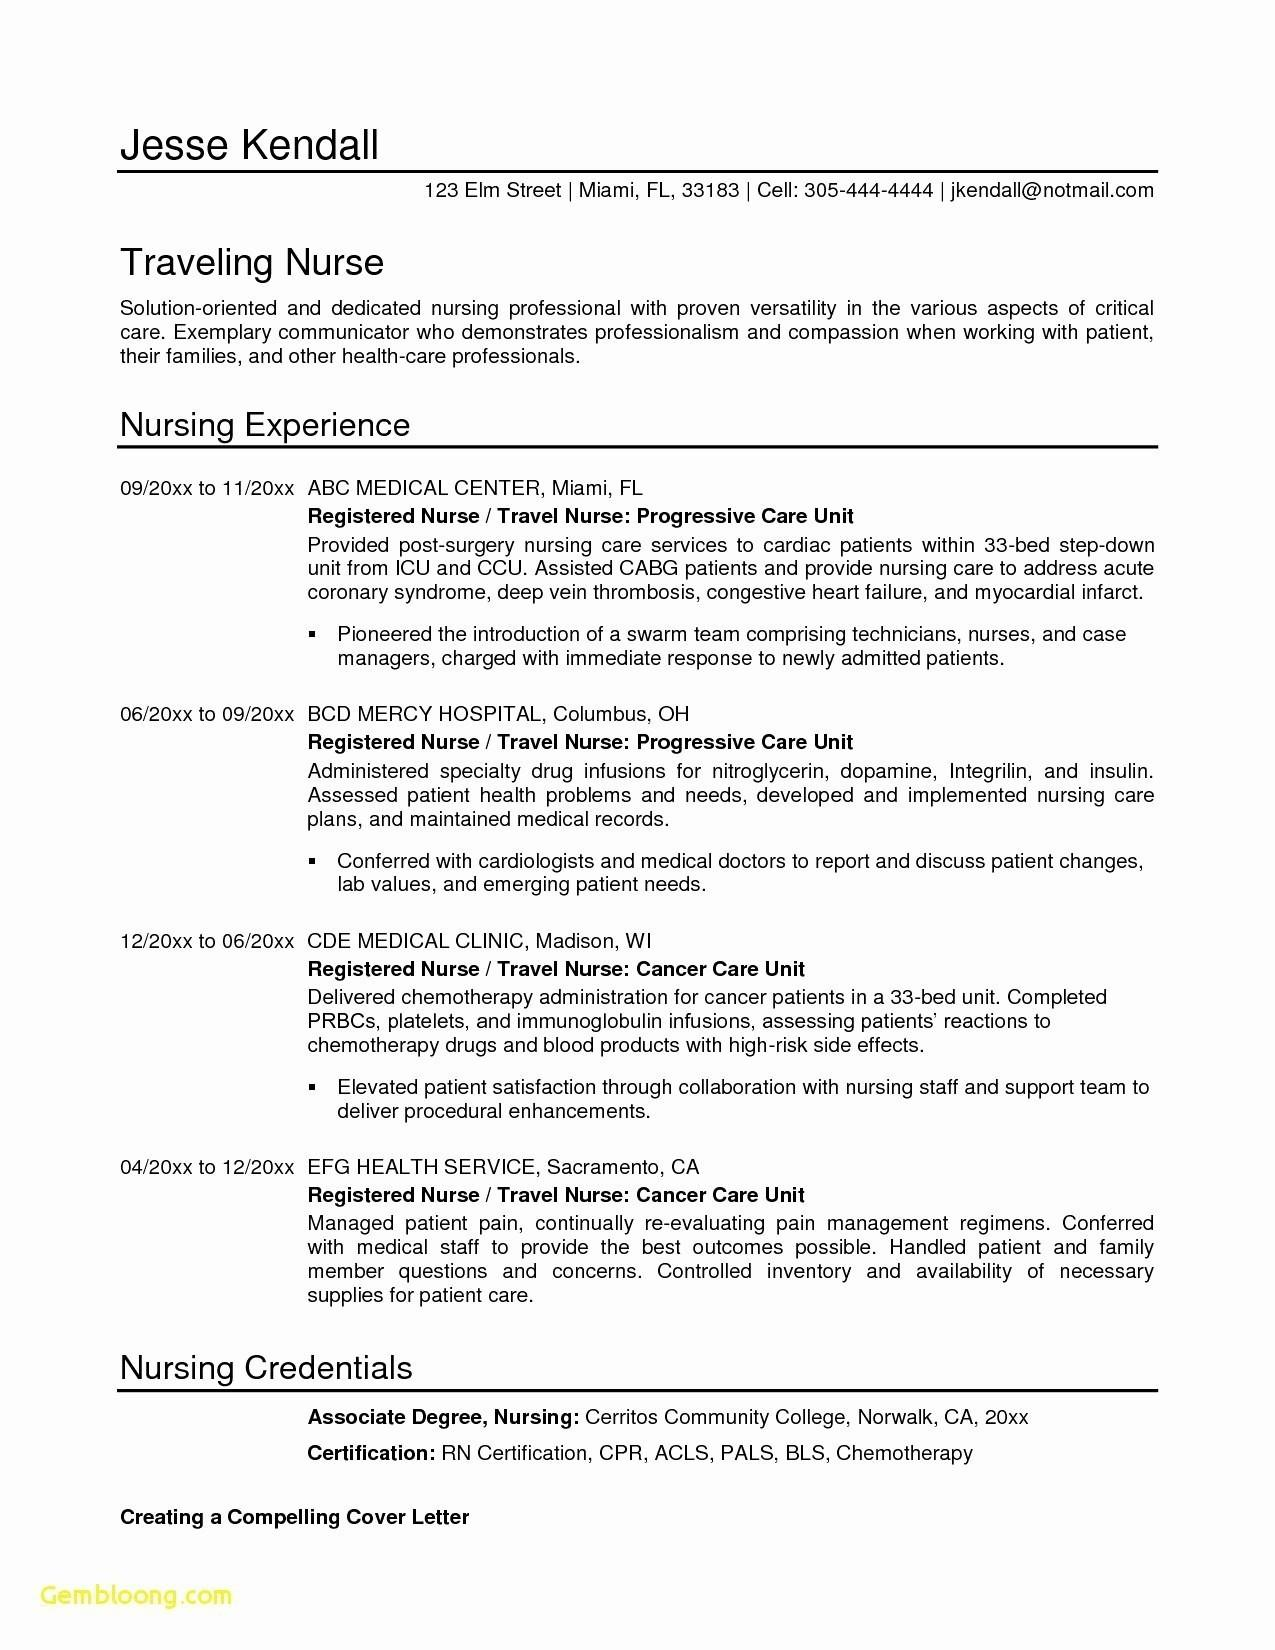 Free Printable Resume And Cover Letter Templates